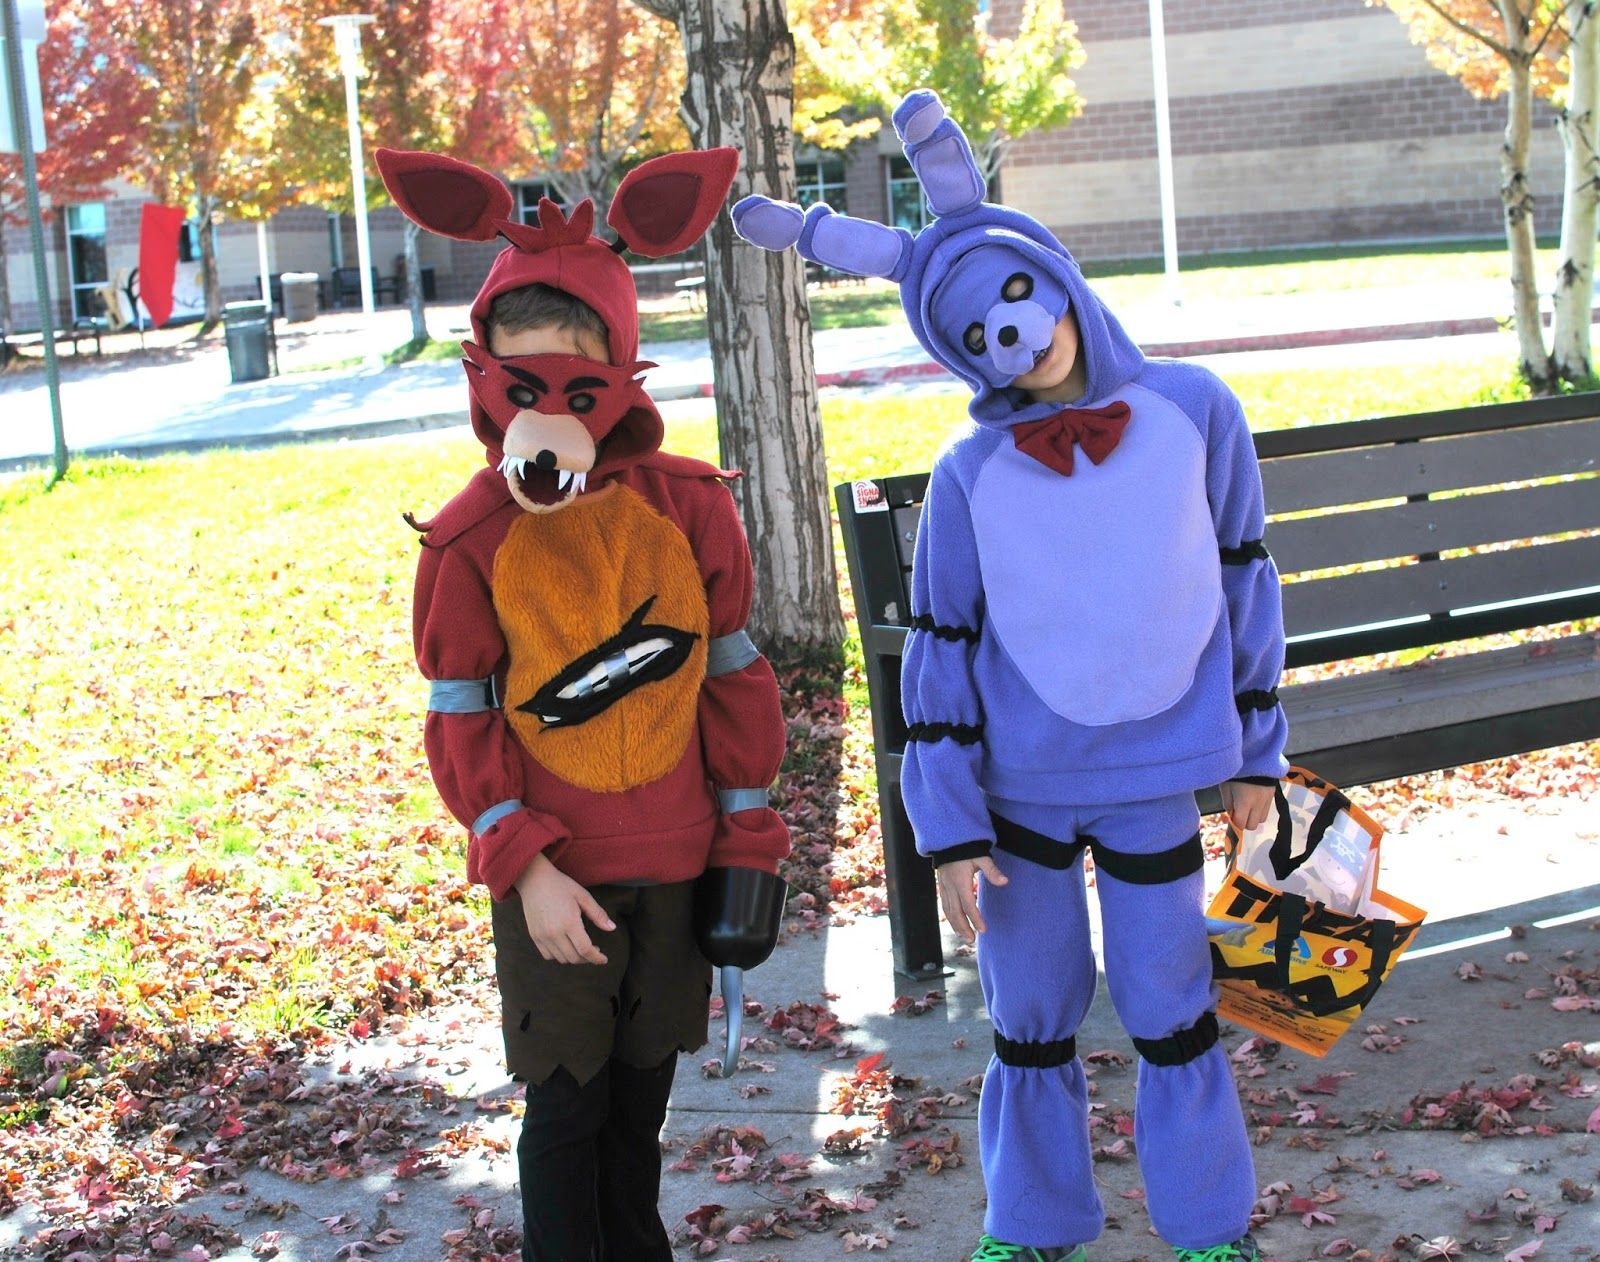 Fnaf bonnie costume for sale - Foxy And Bonnie Diy Halloween Costumes Fnaf